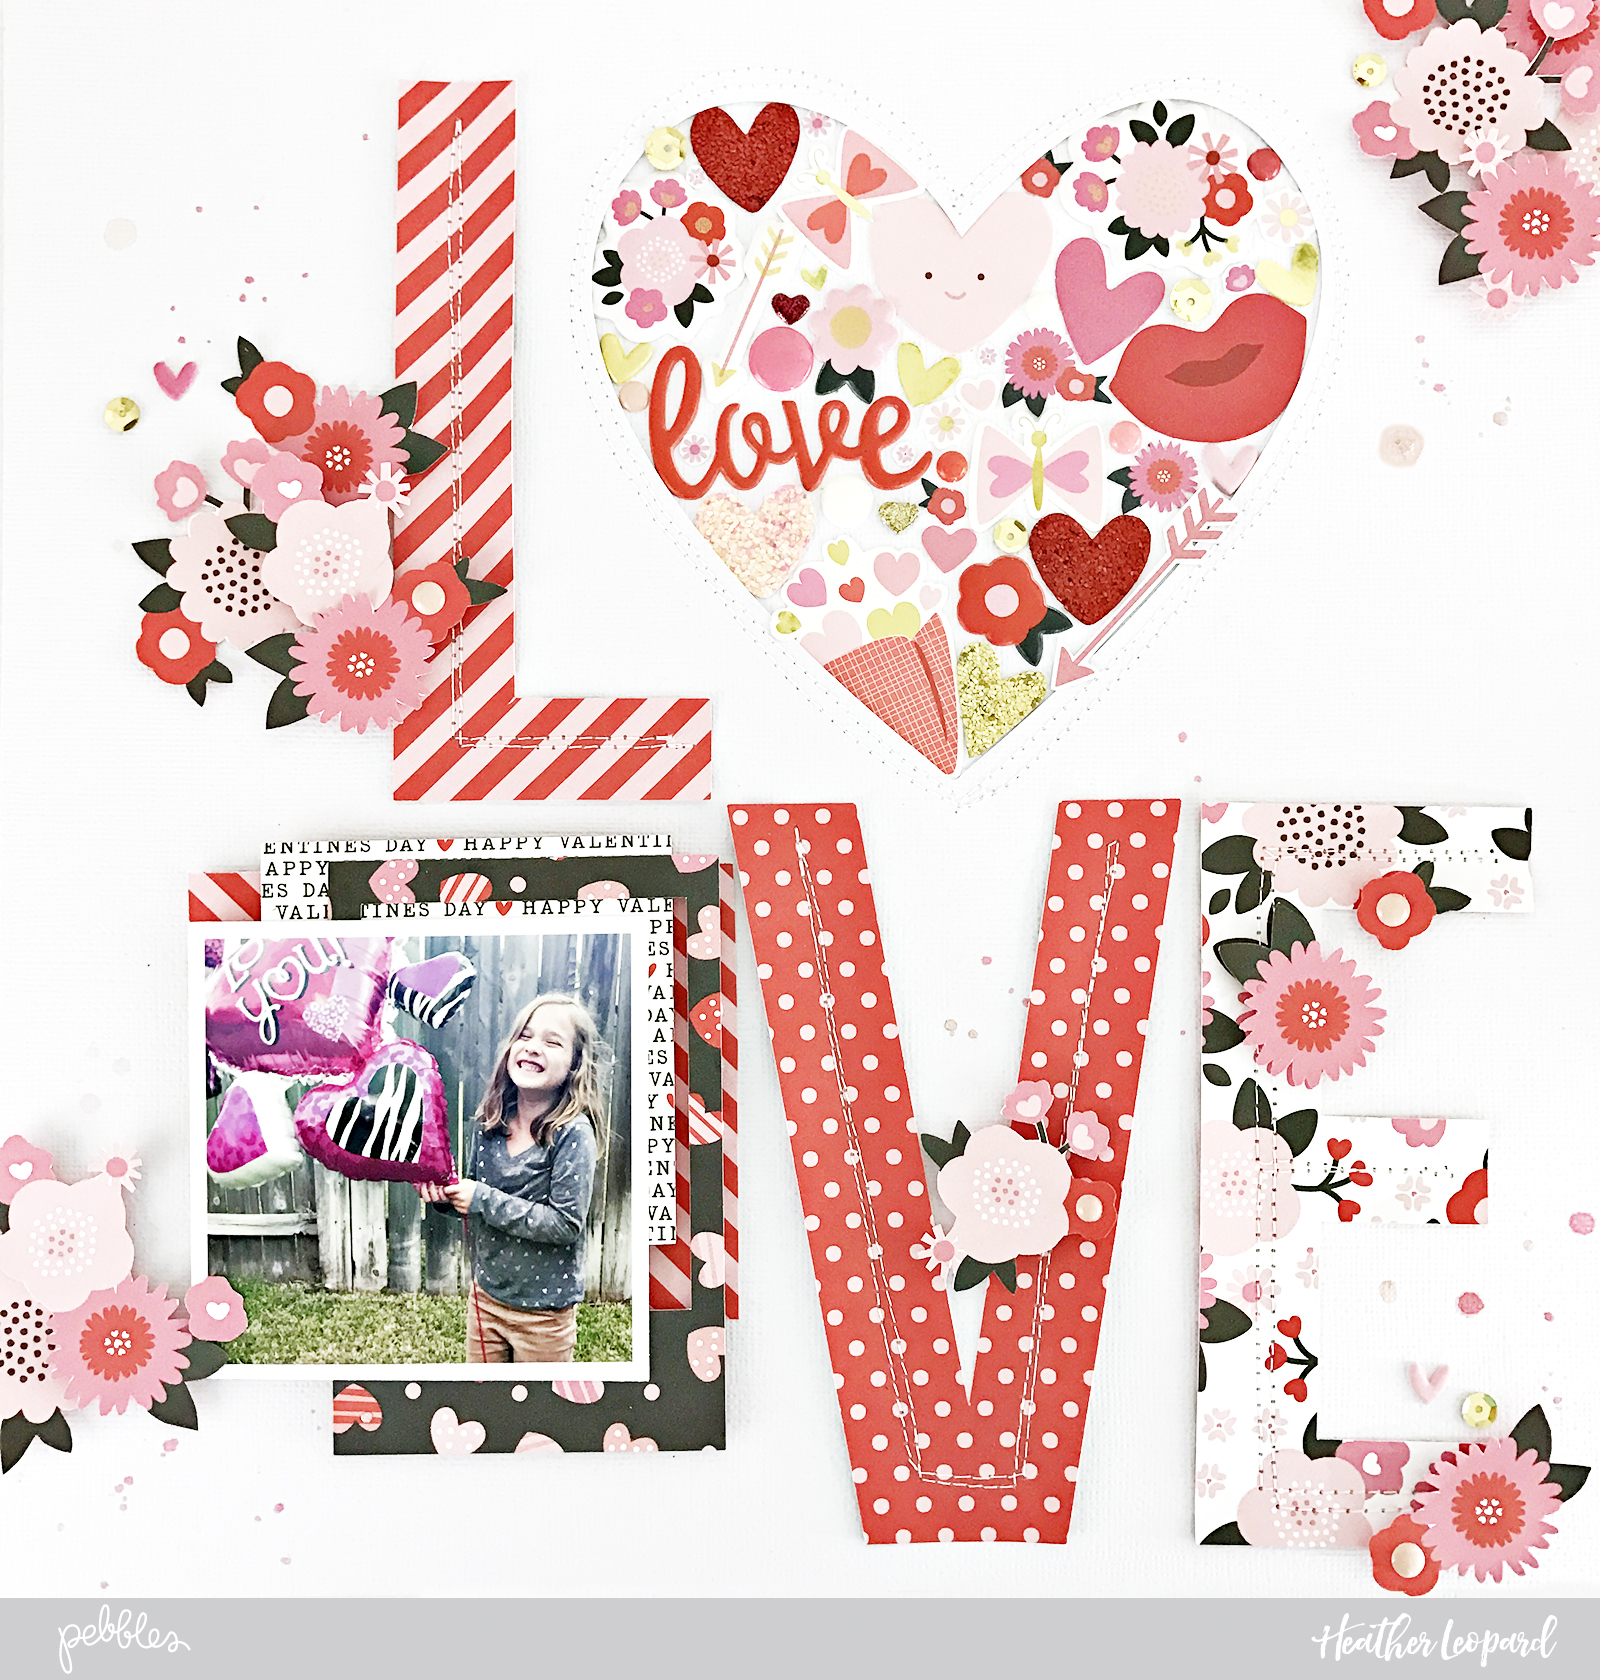 http://pebblesincblog.com/wp-content/uploads/2017/01/My-Funny-Valentine-Love-Scrapbooking-layout-2a-by-Heather-Leopard.jpg